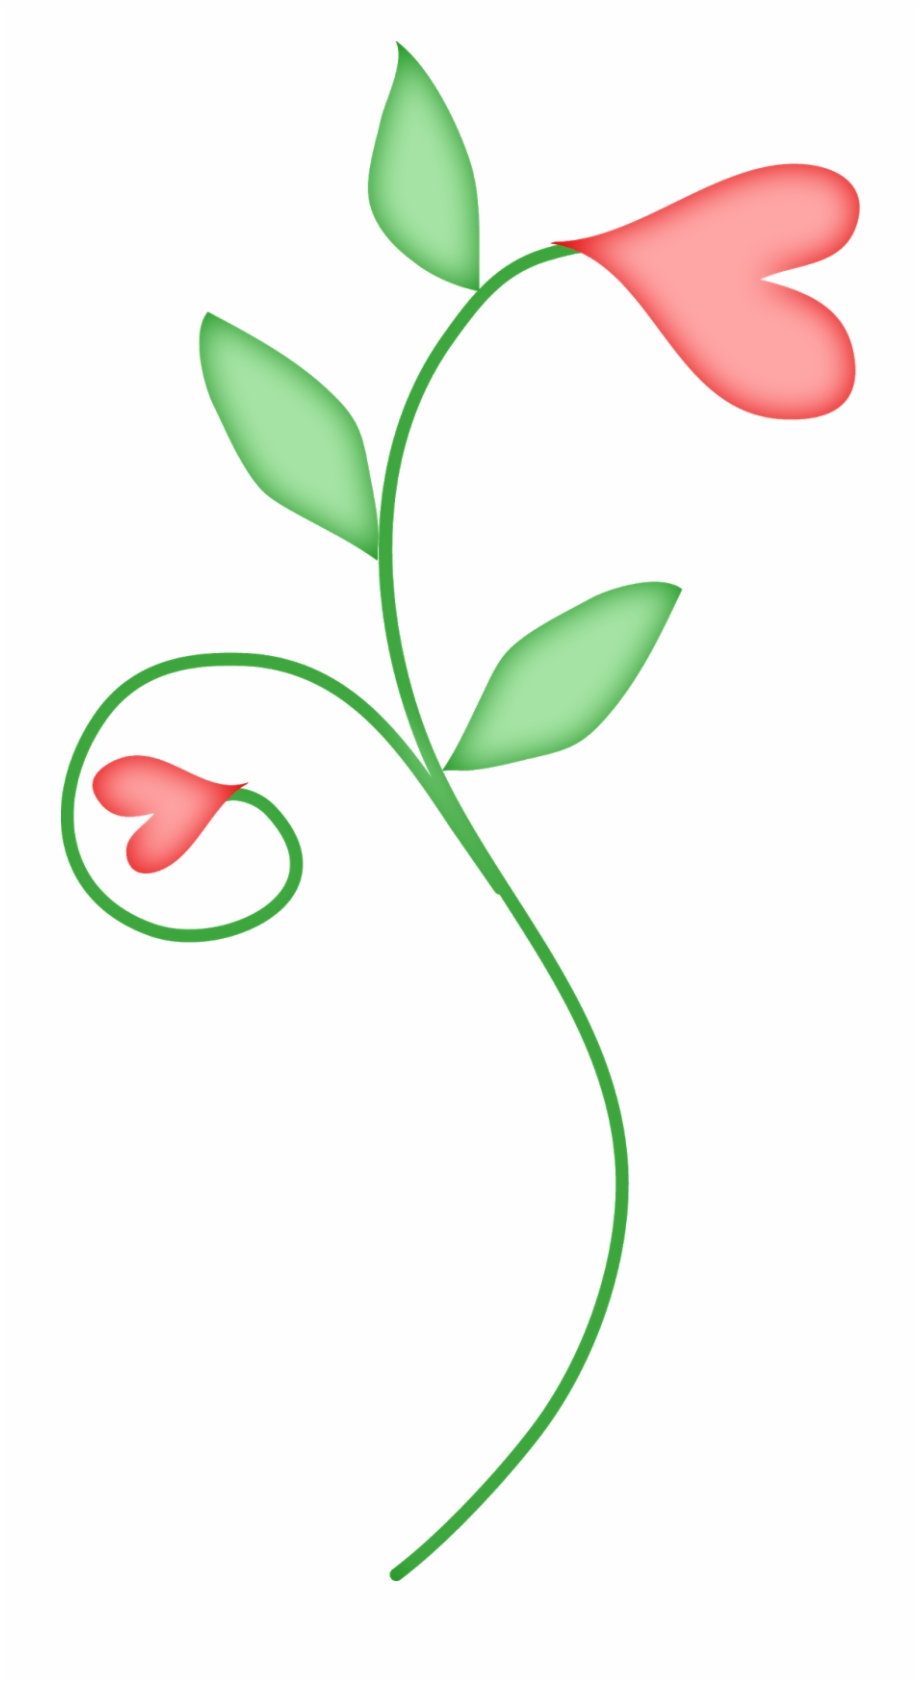 Transparent png download for. Gardening clipart enchanted garden